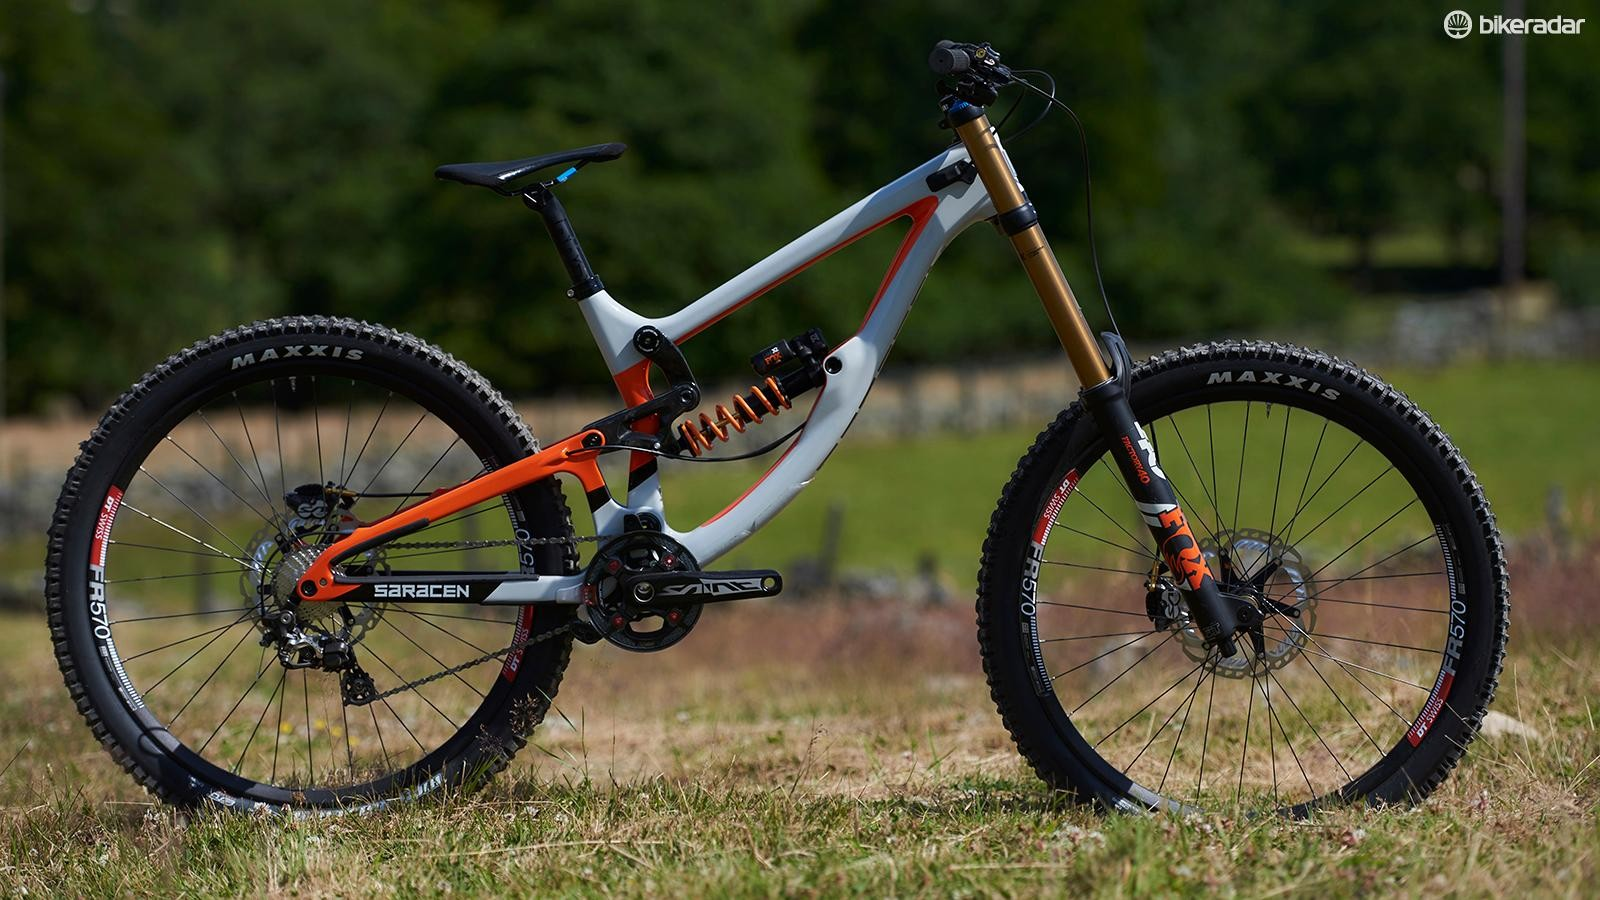 The Myst downhill bike remains unchanged for 2018, save for a fresh paint job. £5,699.99 gets you full Fox Factory suspension and Shimano Saint kit